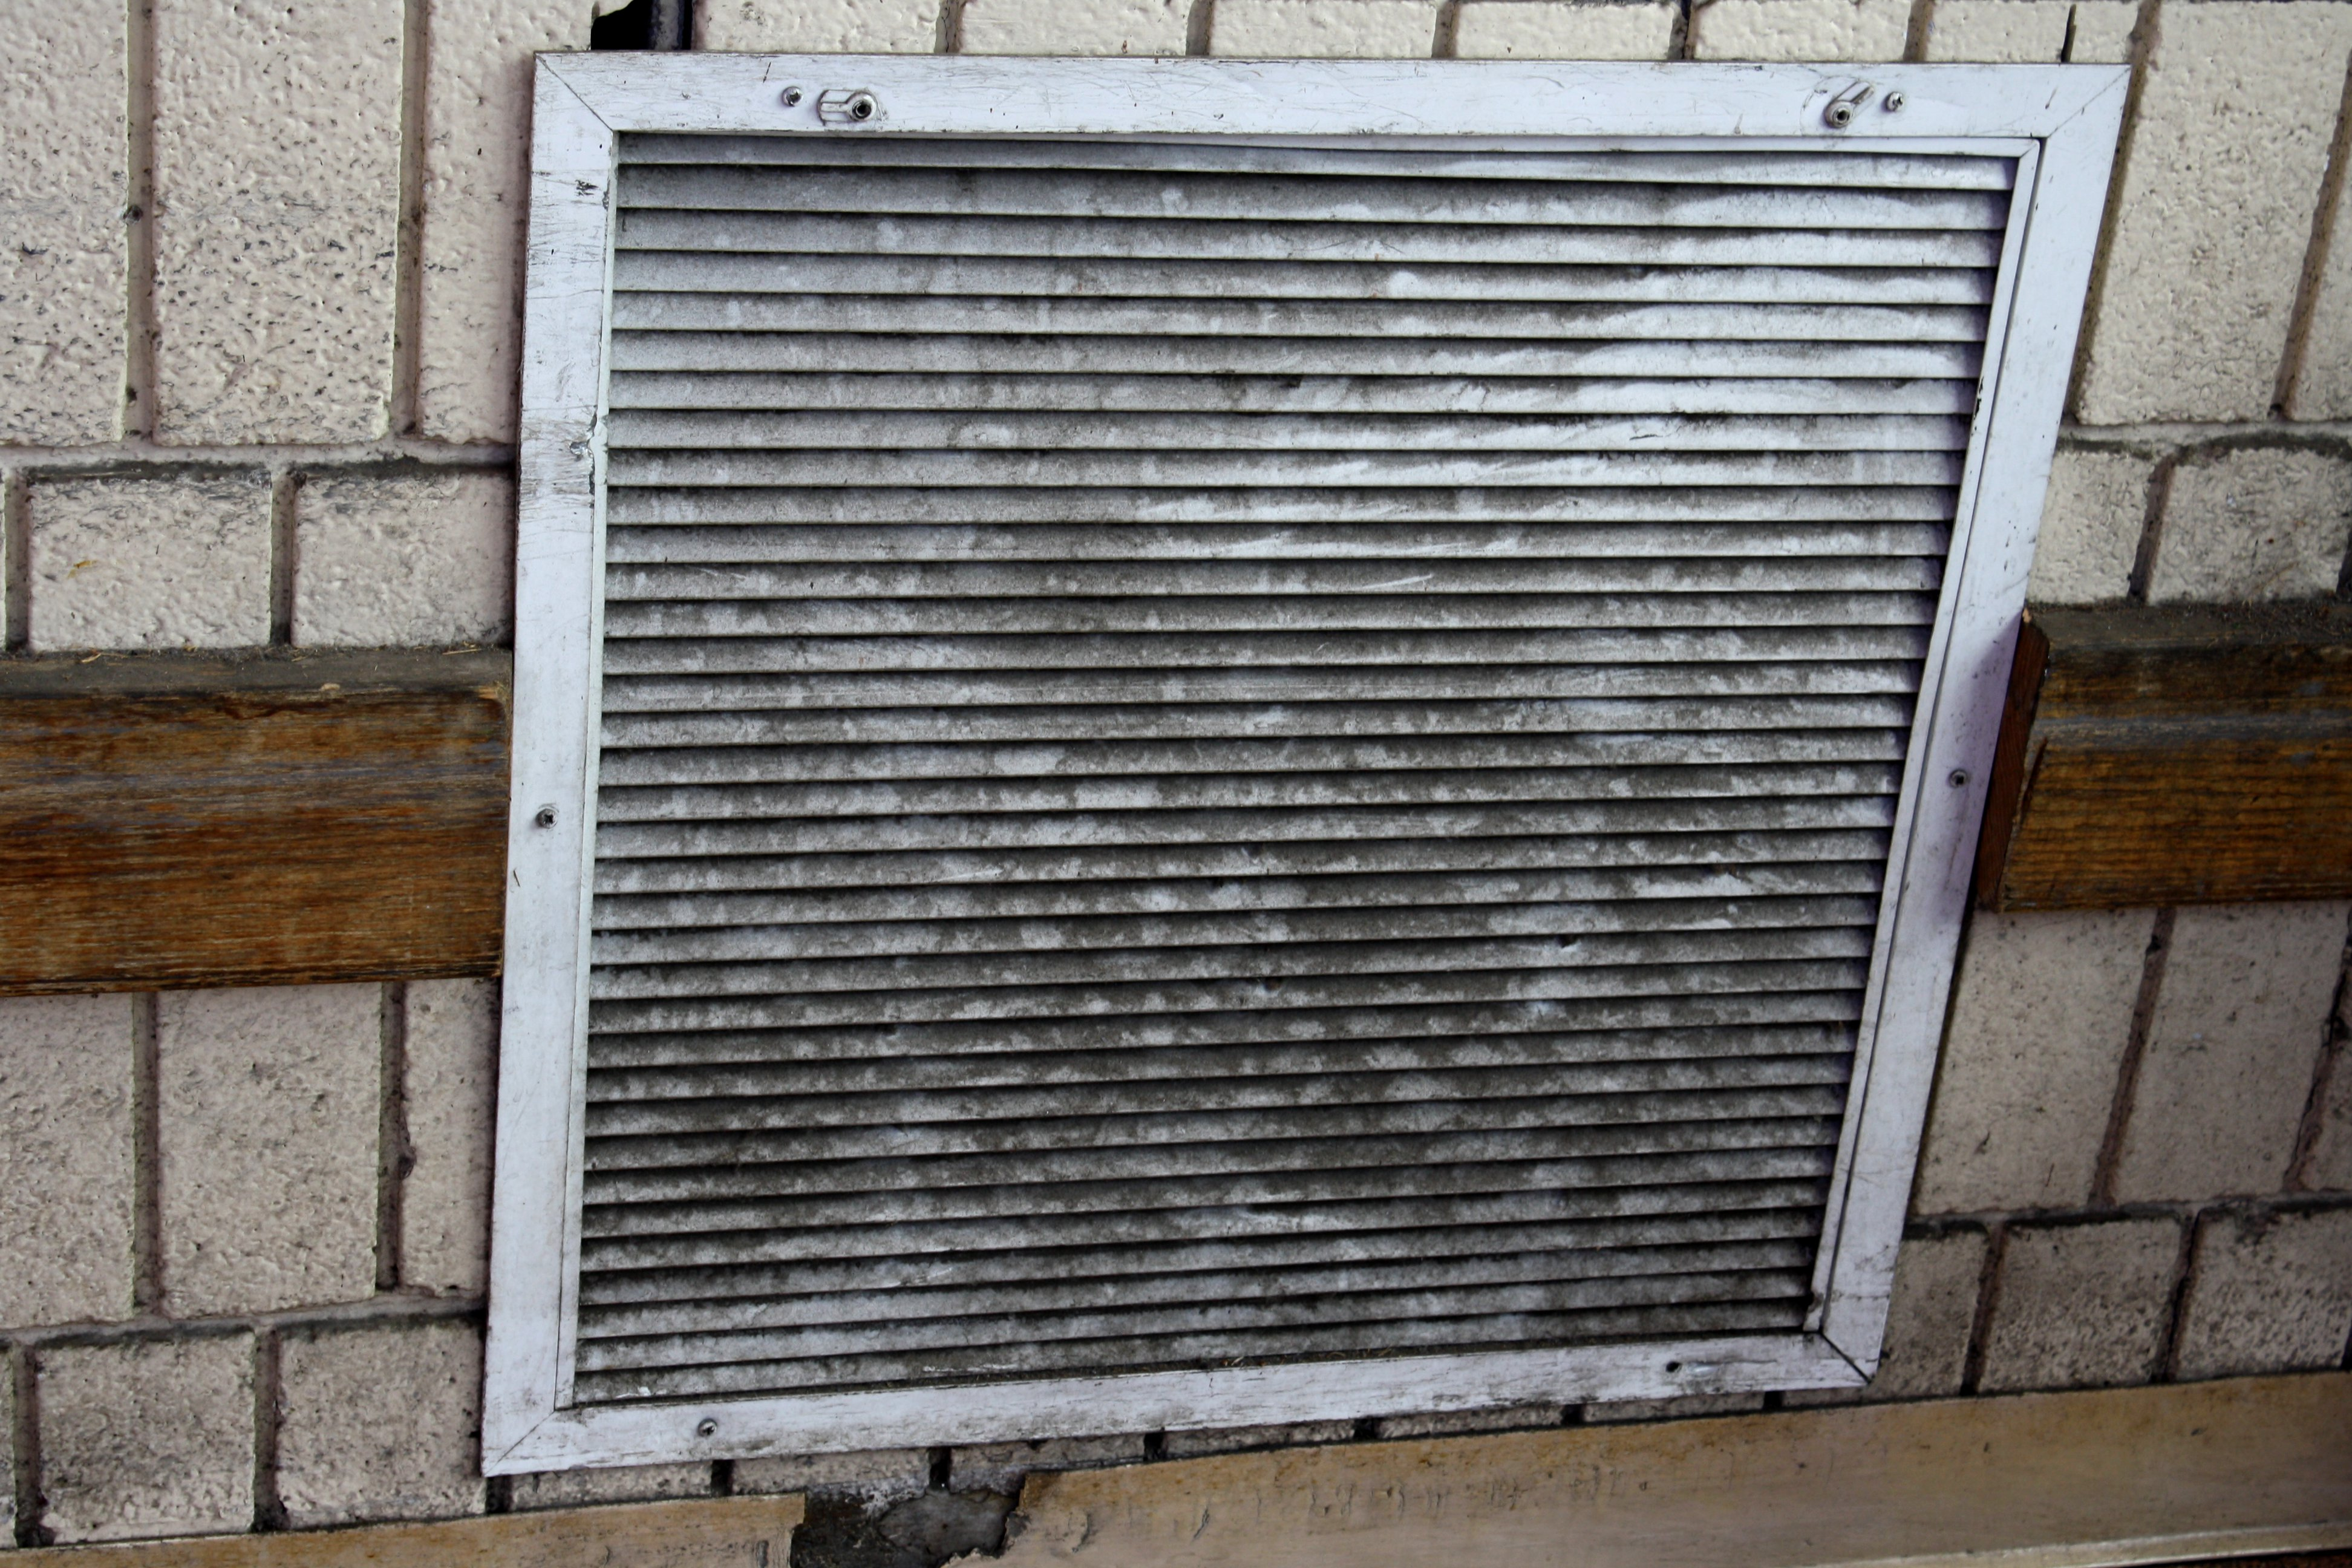 Dirty Ventilation Duct Cover Picture Free Photograph Photos Public  #5C493A